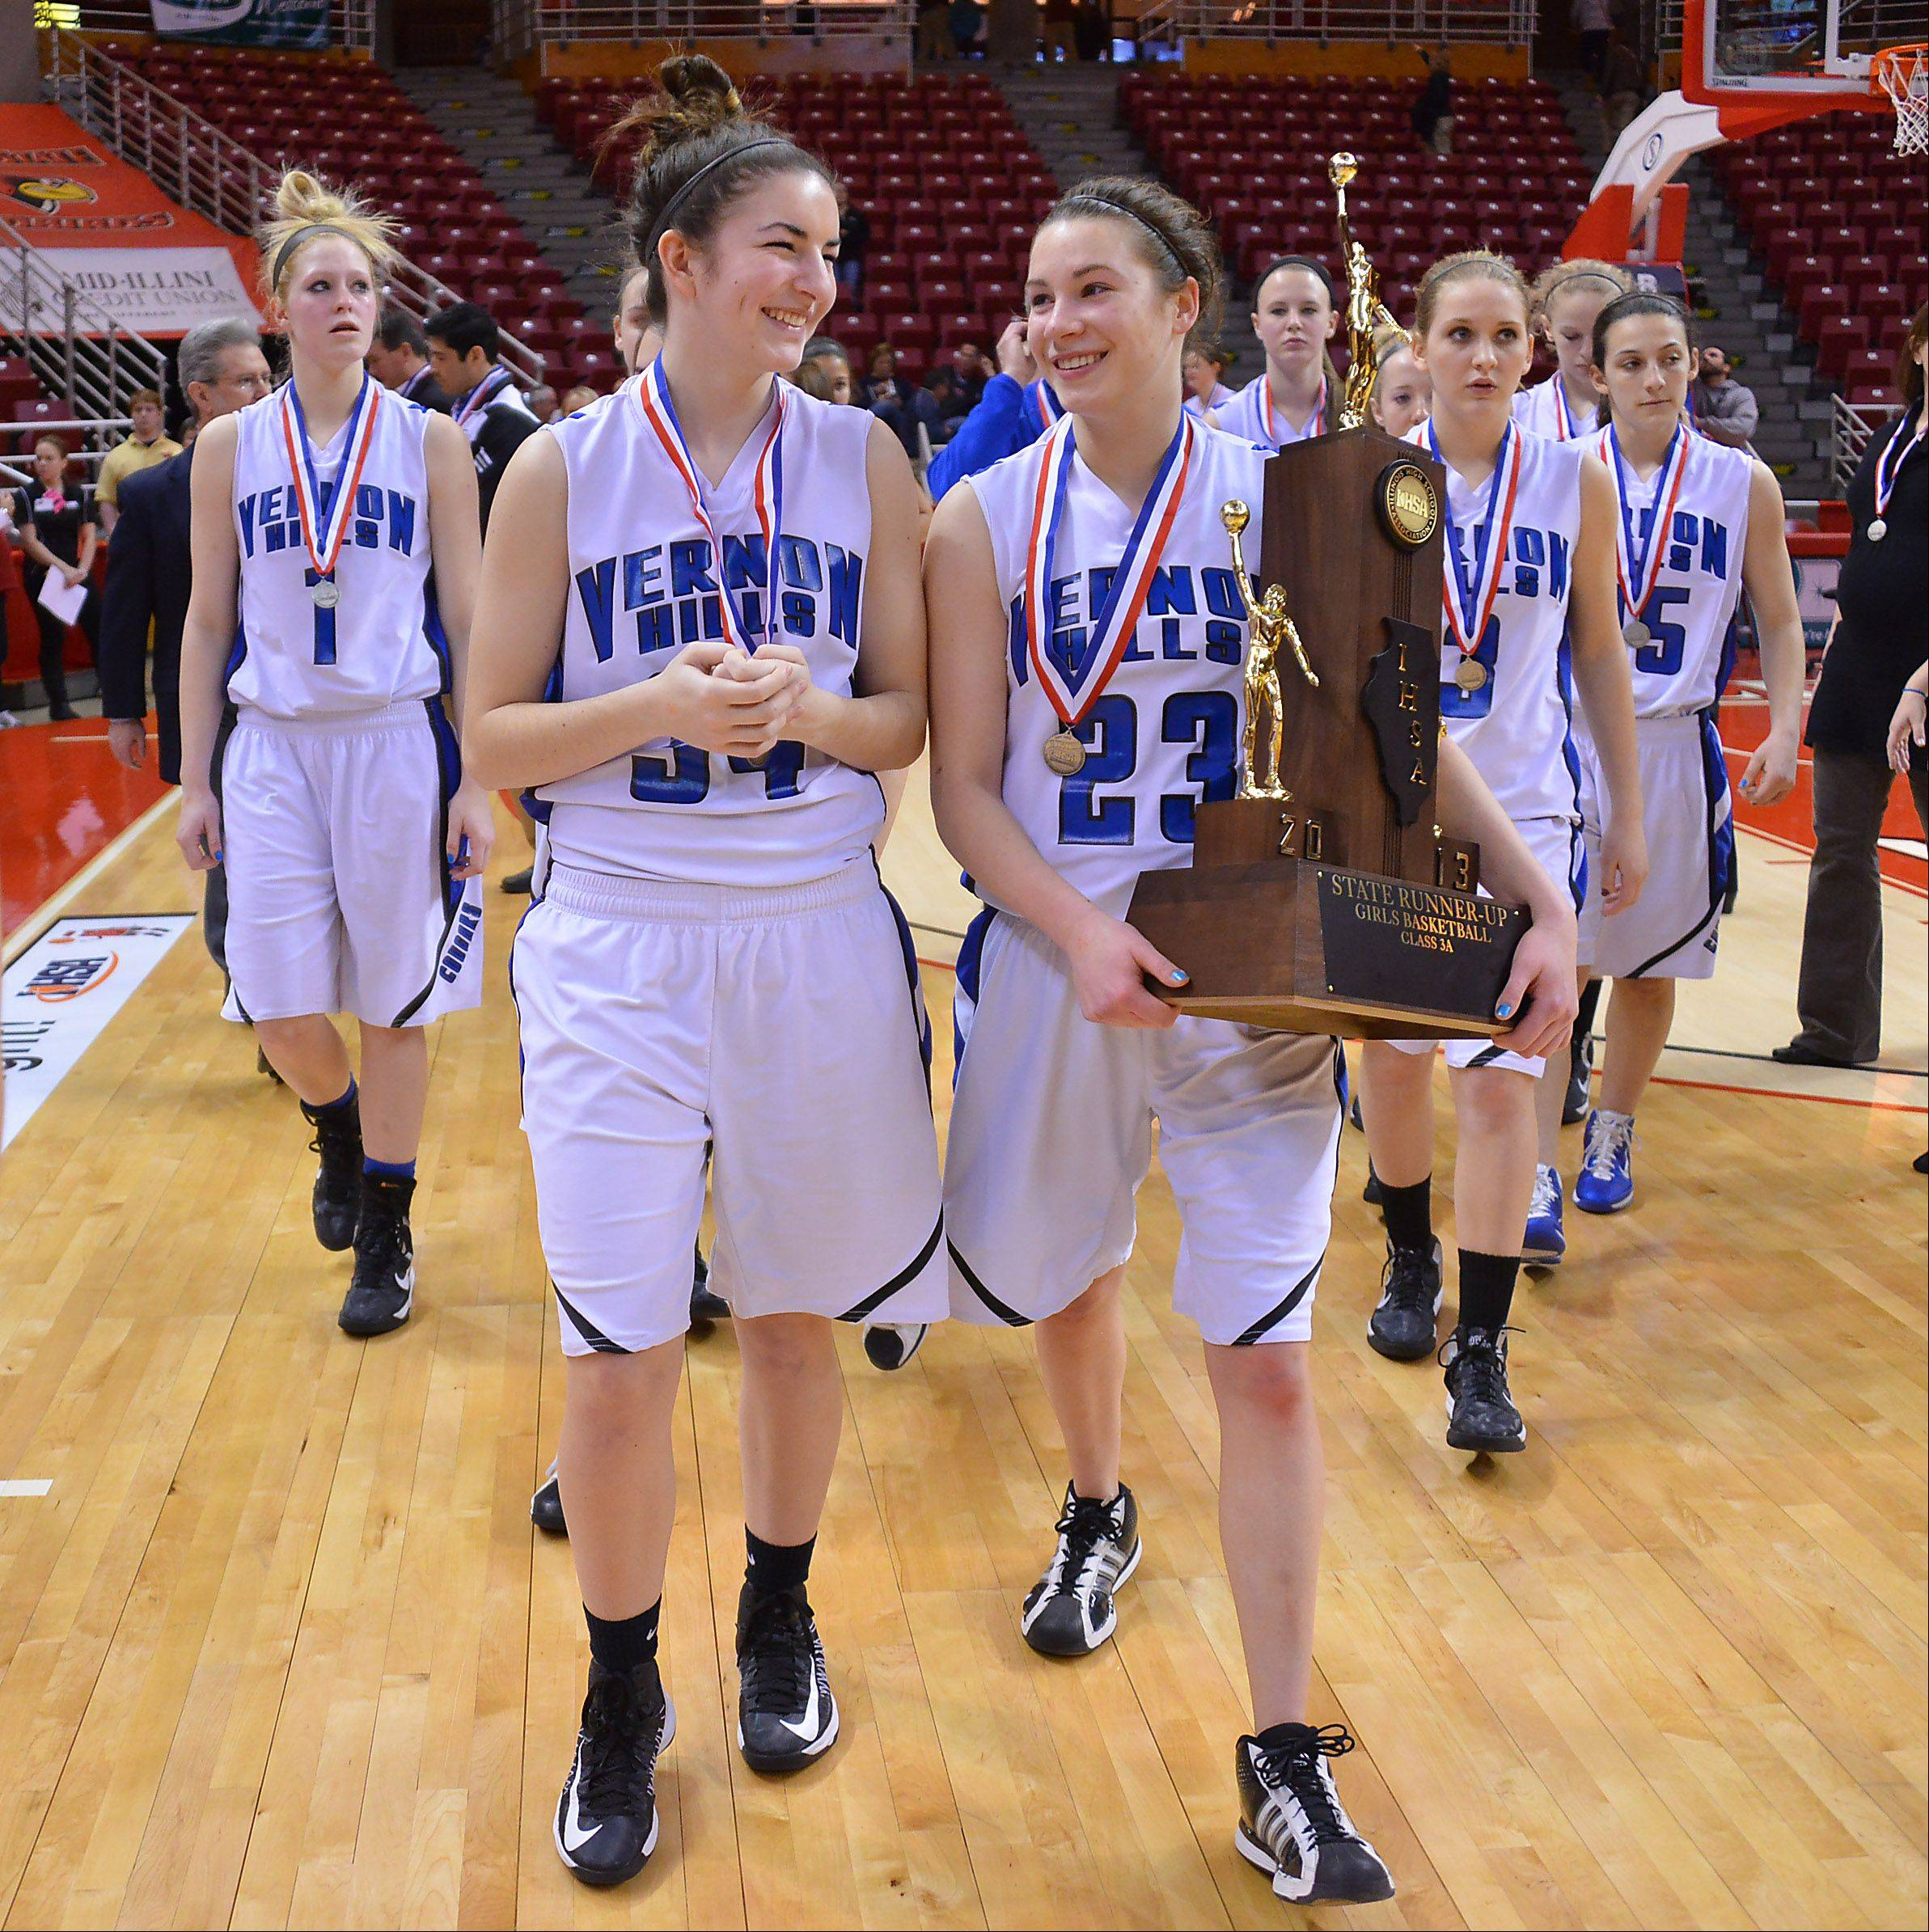 Vernon Hills' Brie Bahlmann (right) and teammate Shannon Healey are all smiles as they walk with the trophy off the floor winning second place in the Class 3A state girls basketball championship game in Normal on Saturday.